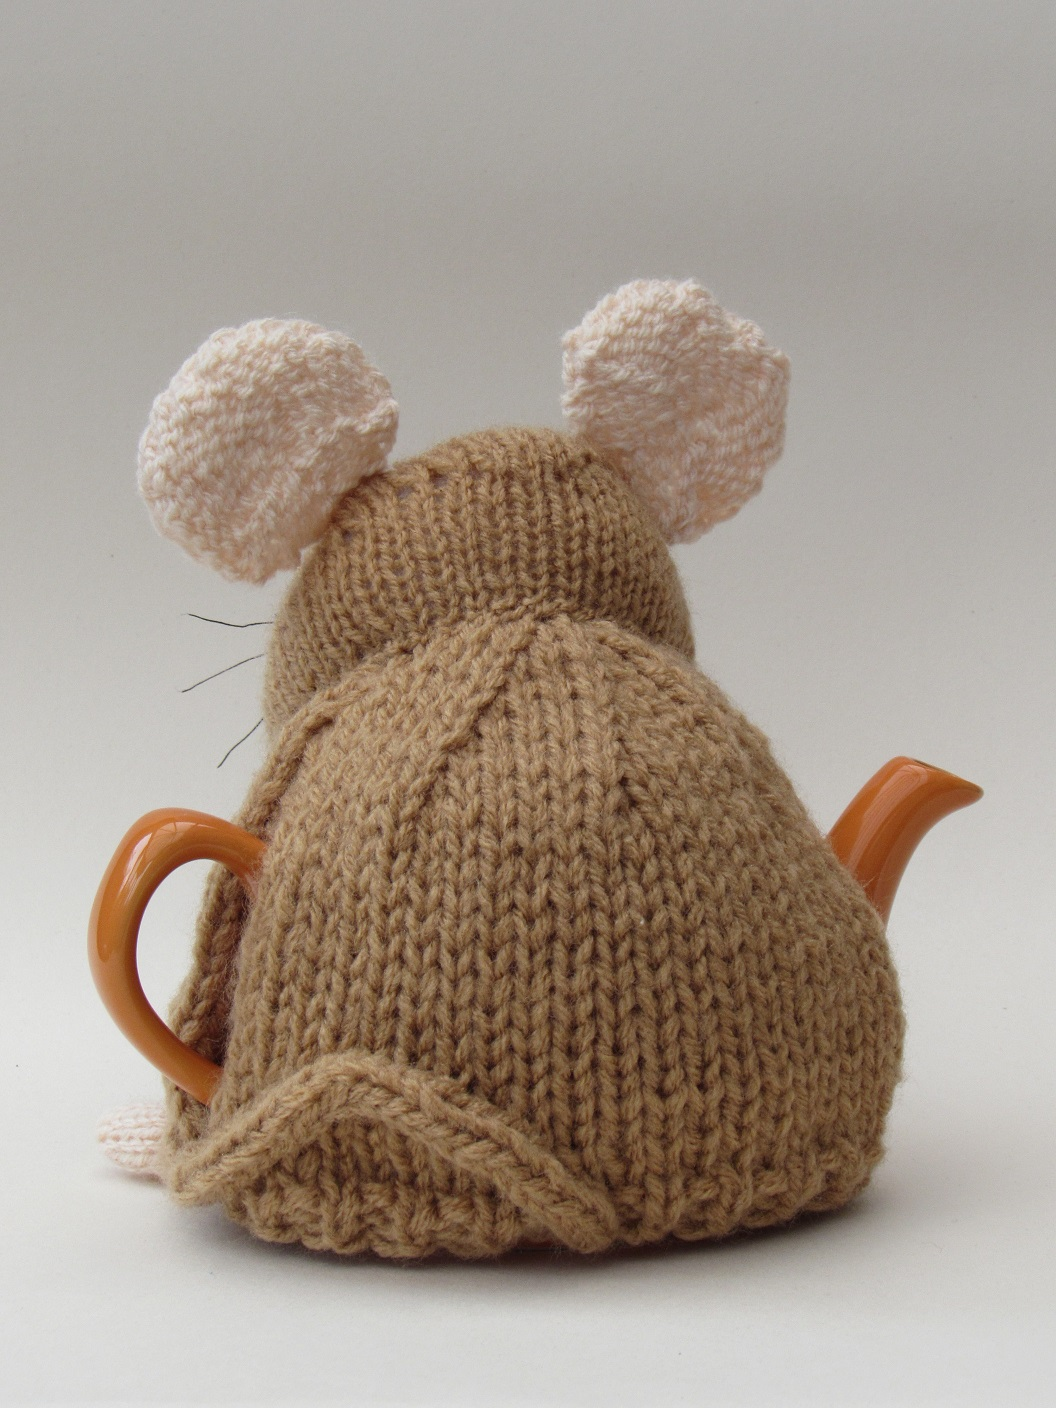 Dormouse knitting pattern